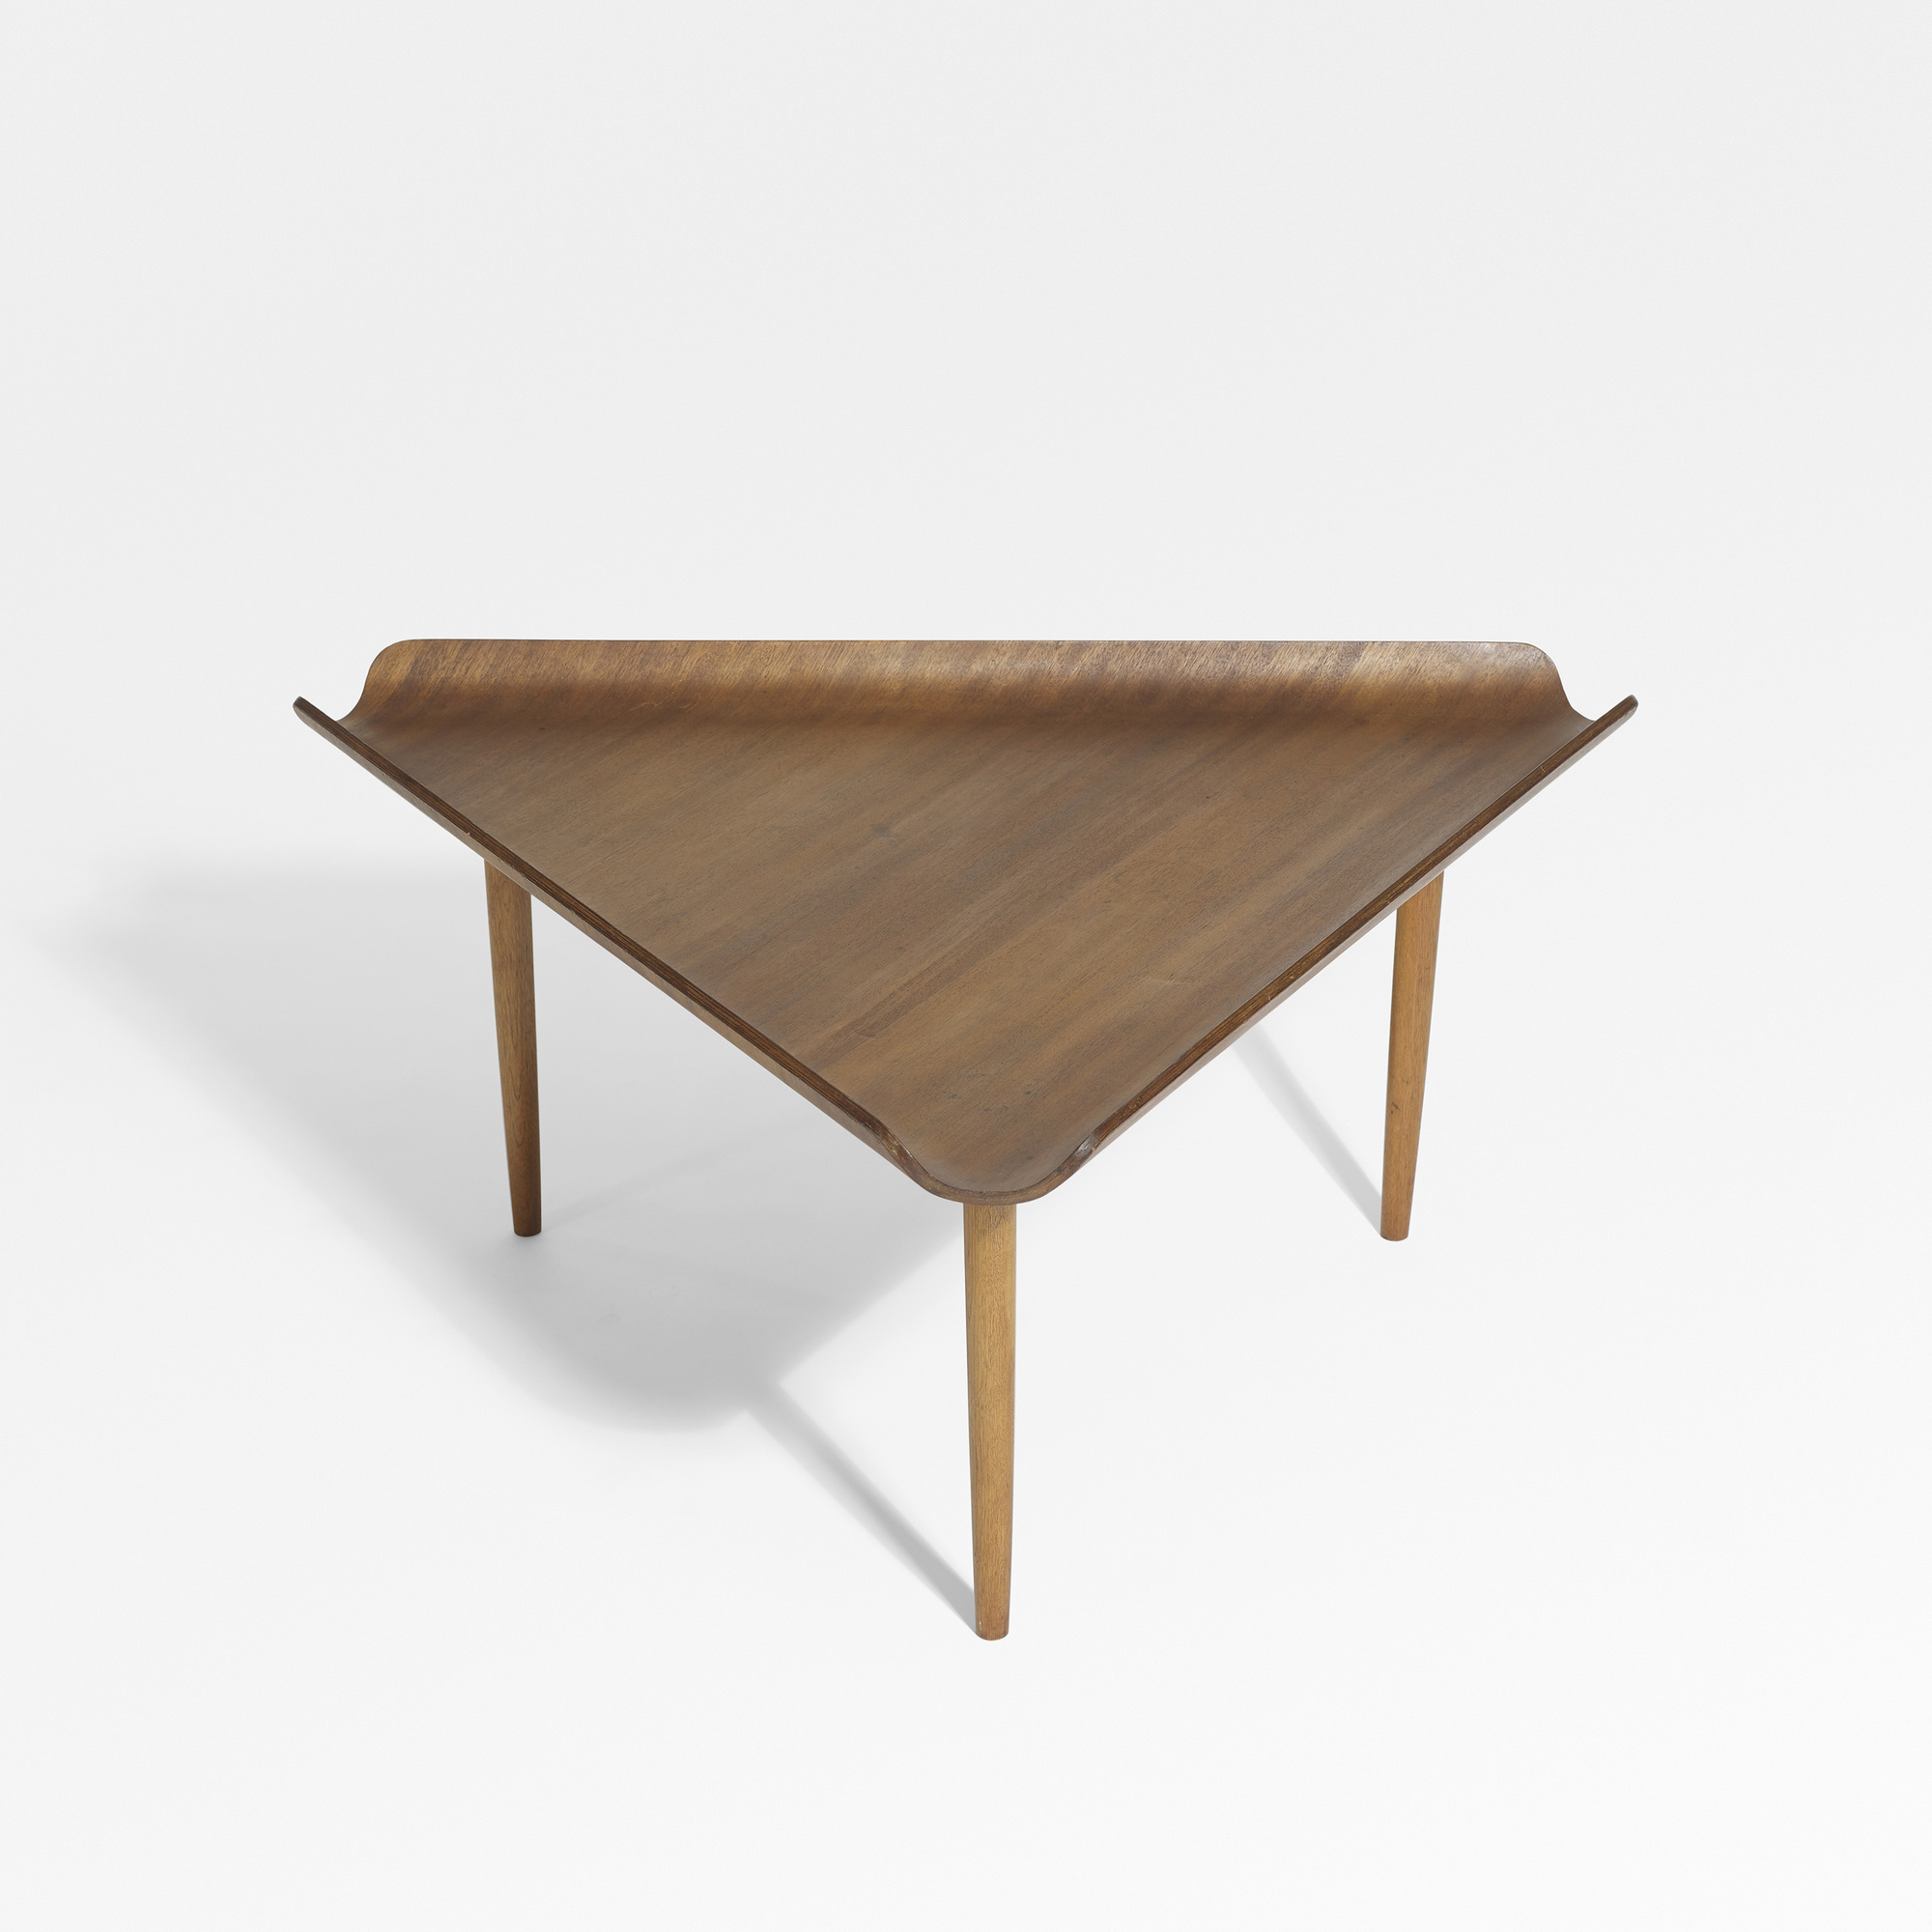 Eames Etr Elliptical Couchtisch Plywood Coffee Table Eames Reproduction Walnut 1 Retro Love